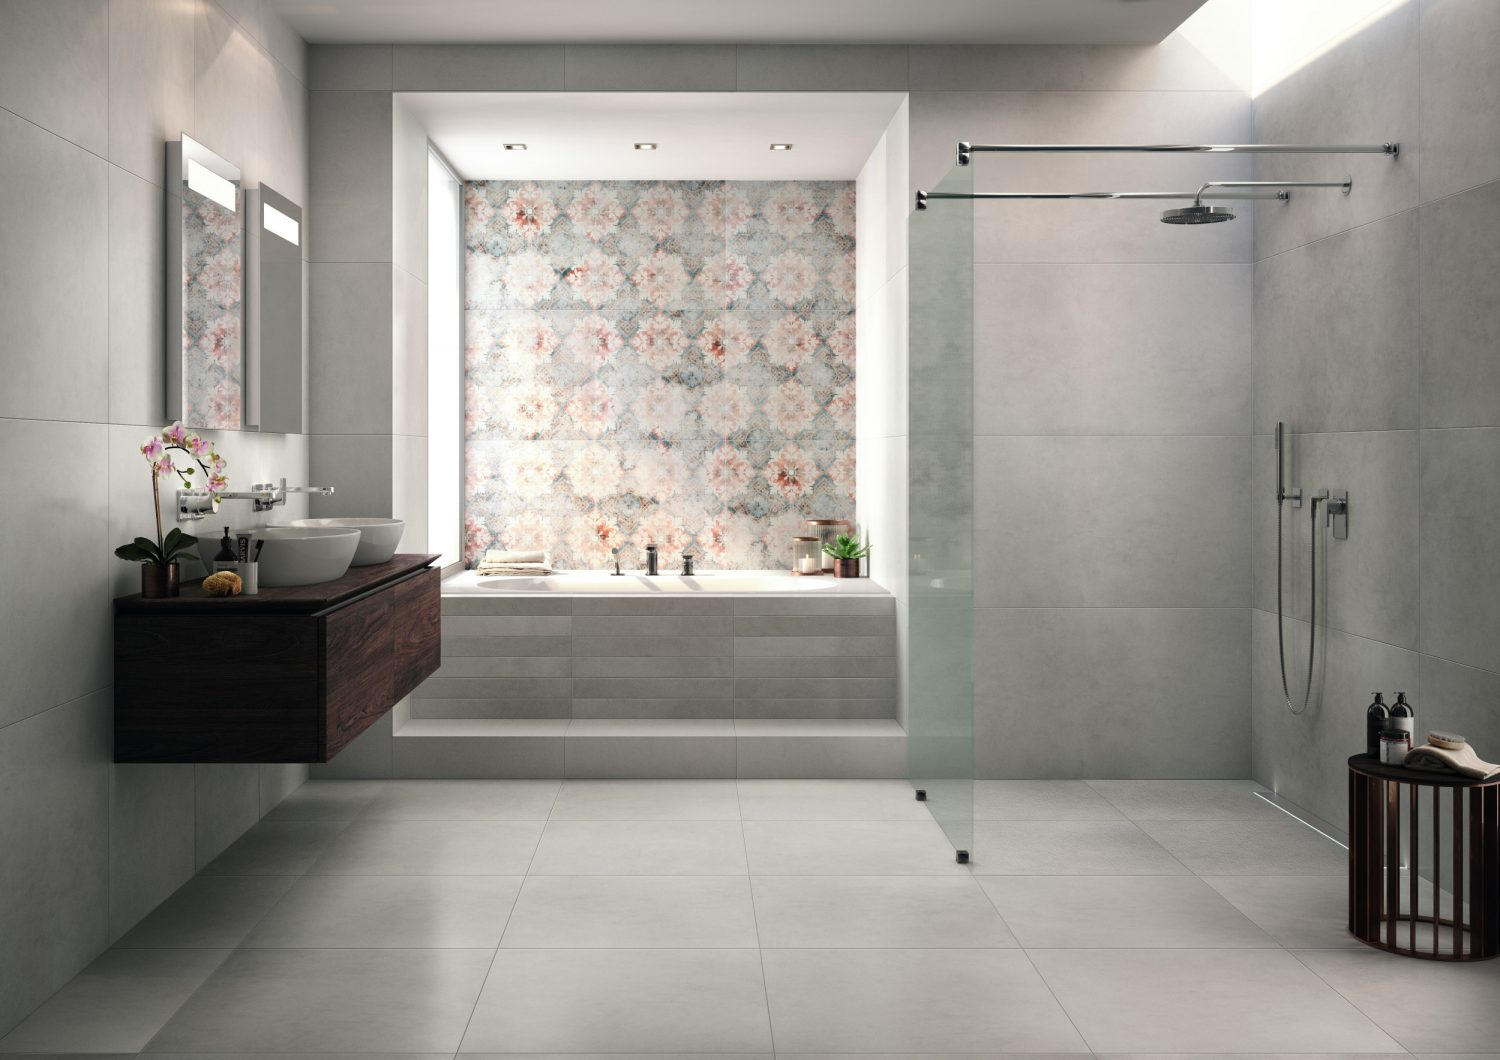 Bathrooms peterborough from orchid bathrooms - Ways to decorate bathroom ...